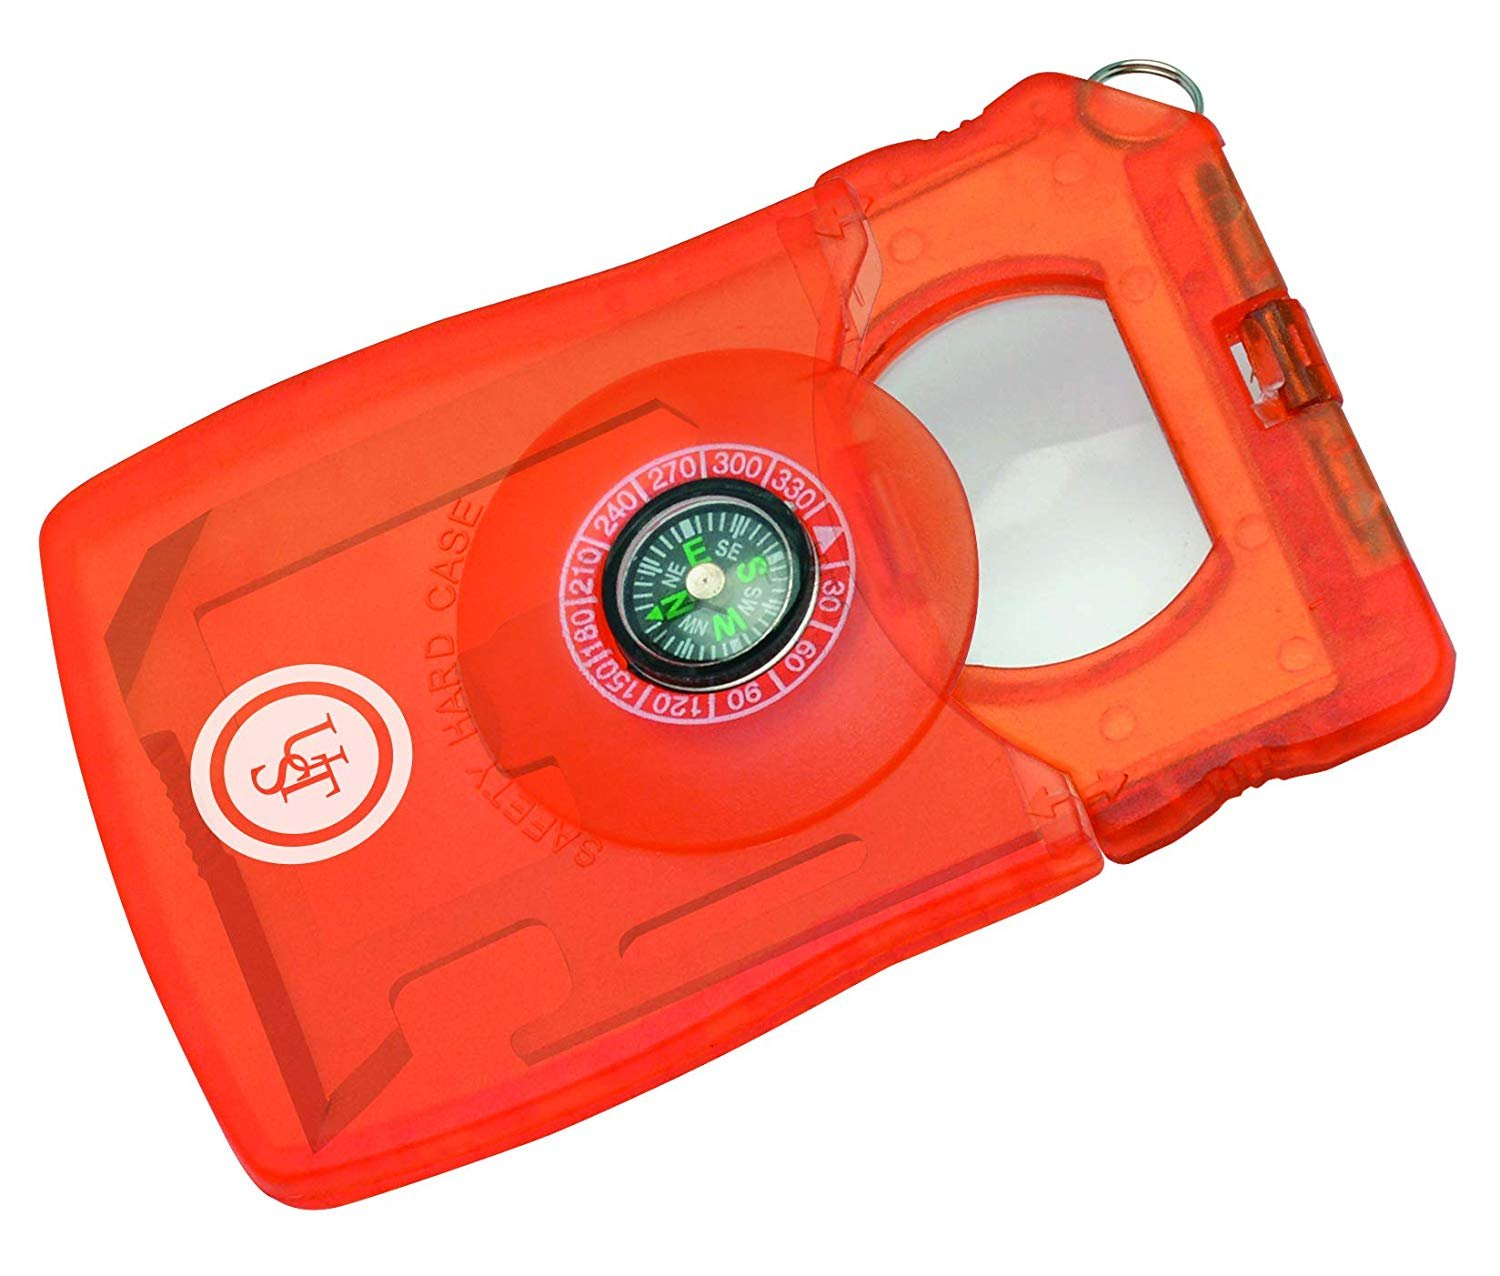 UST SURVIVAL CARD TOOL 13 IN 1